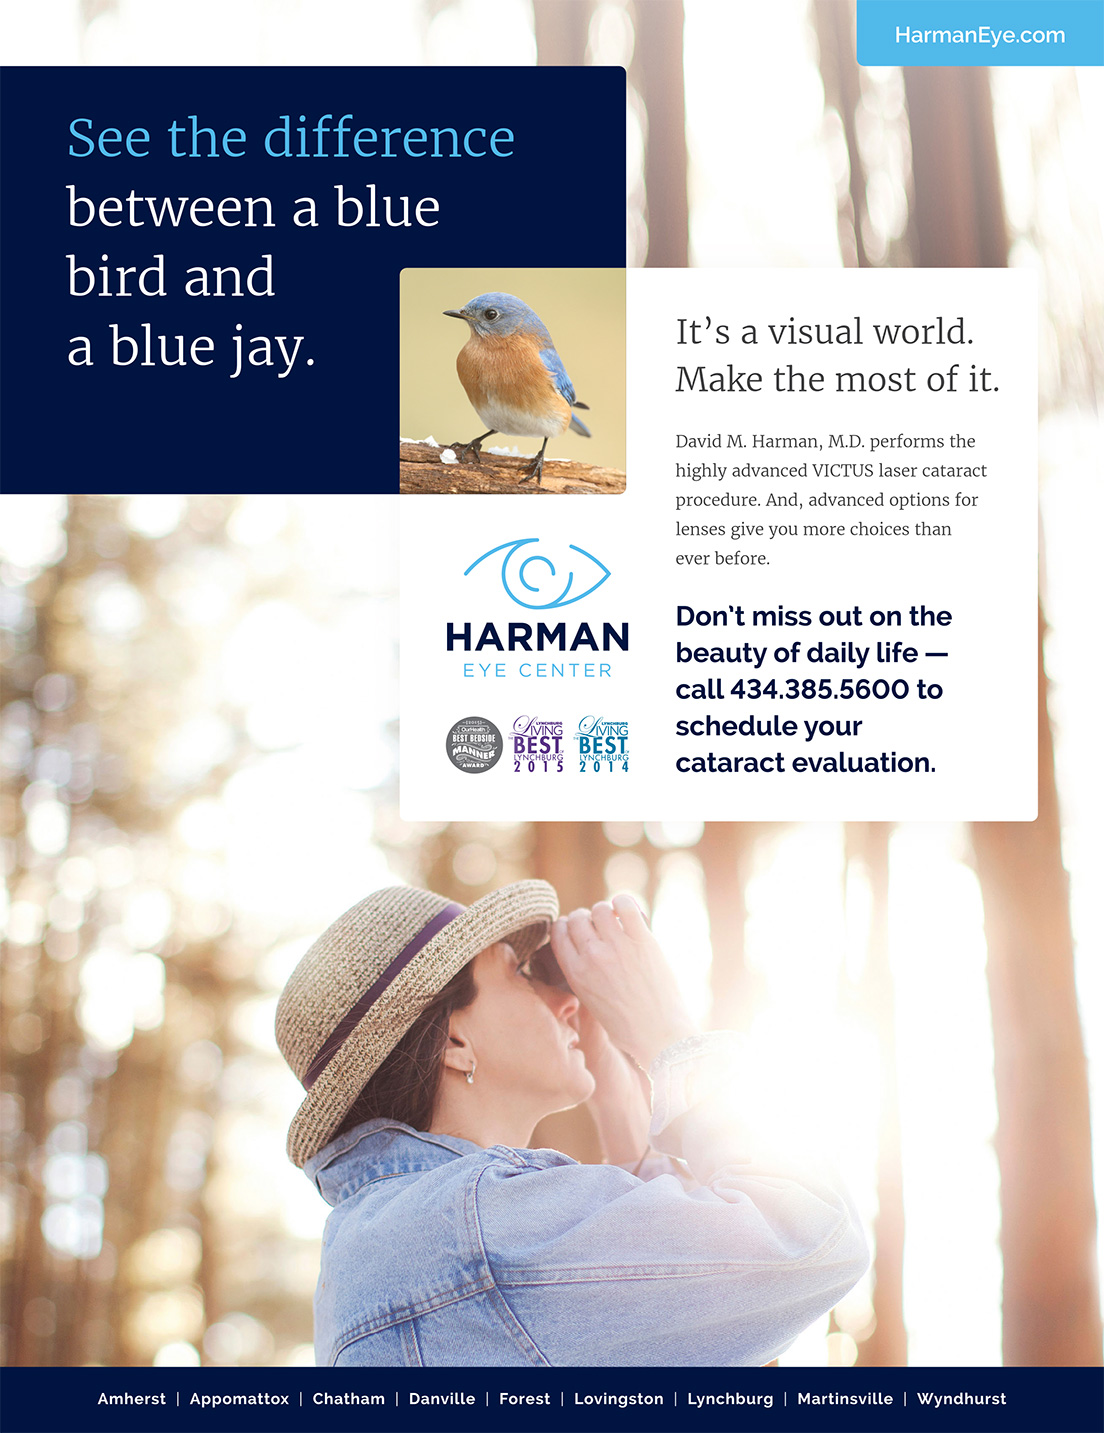 Print Ad for Harman Eye Center